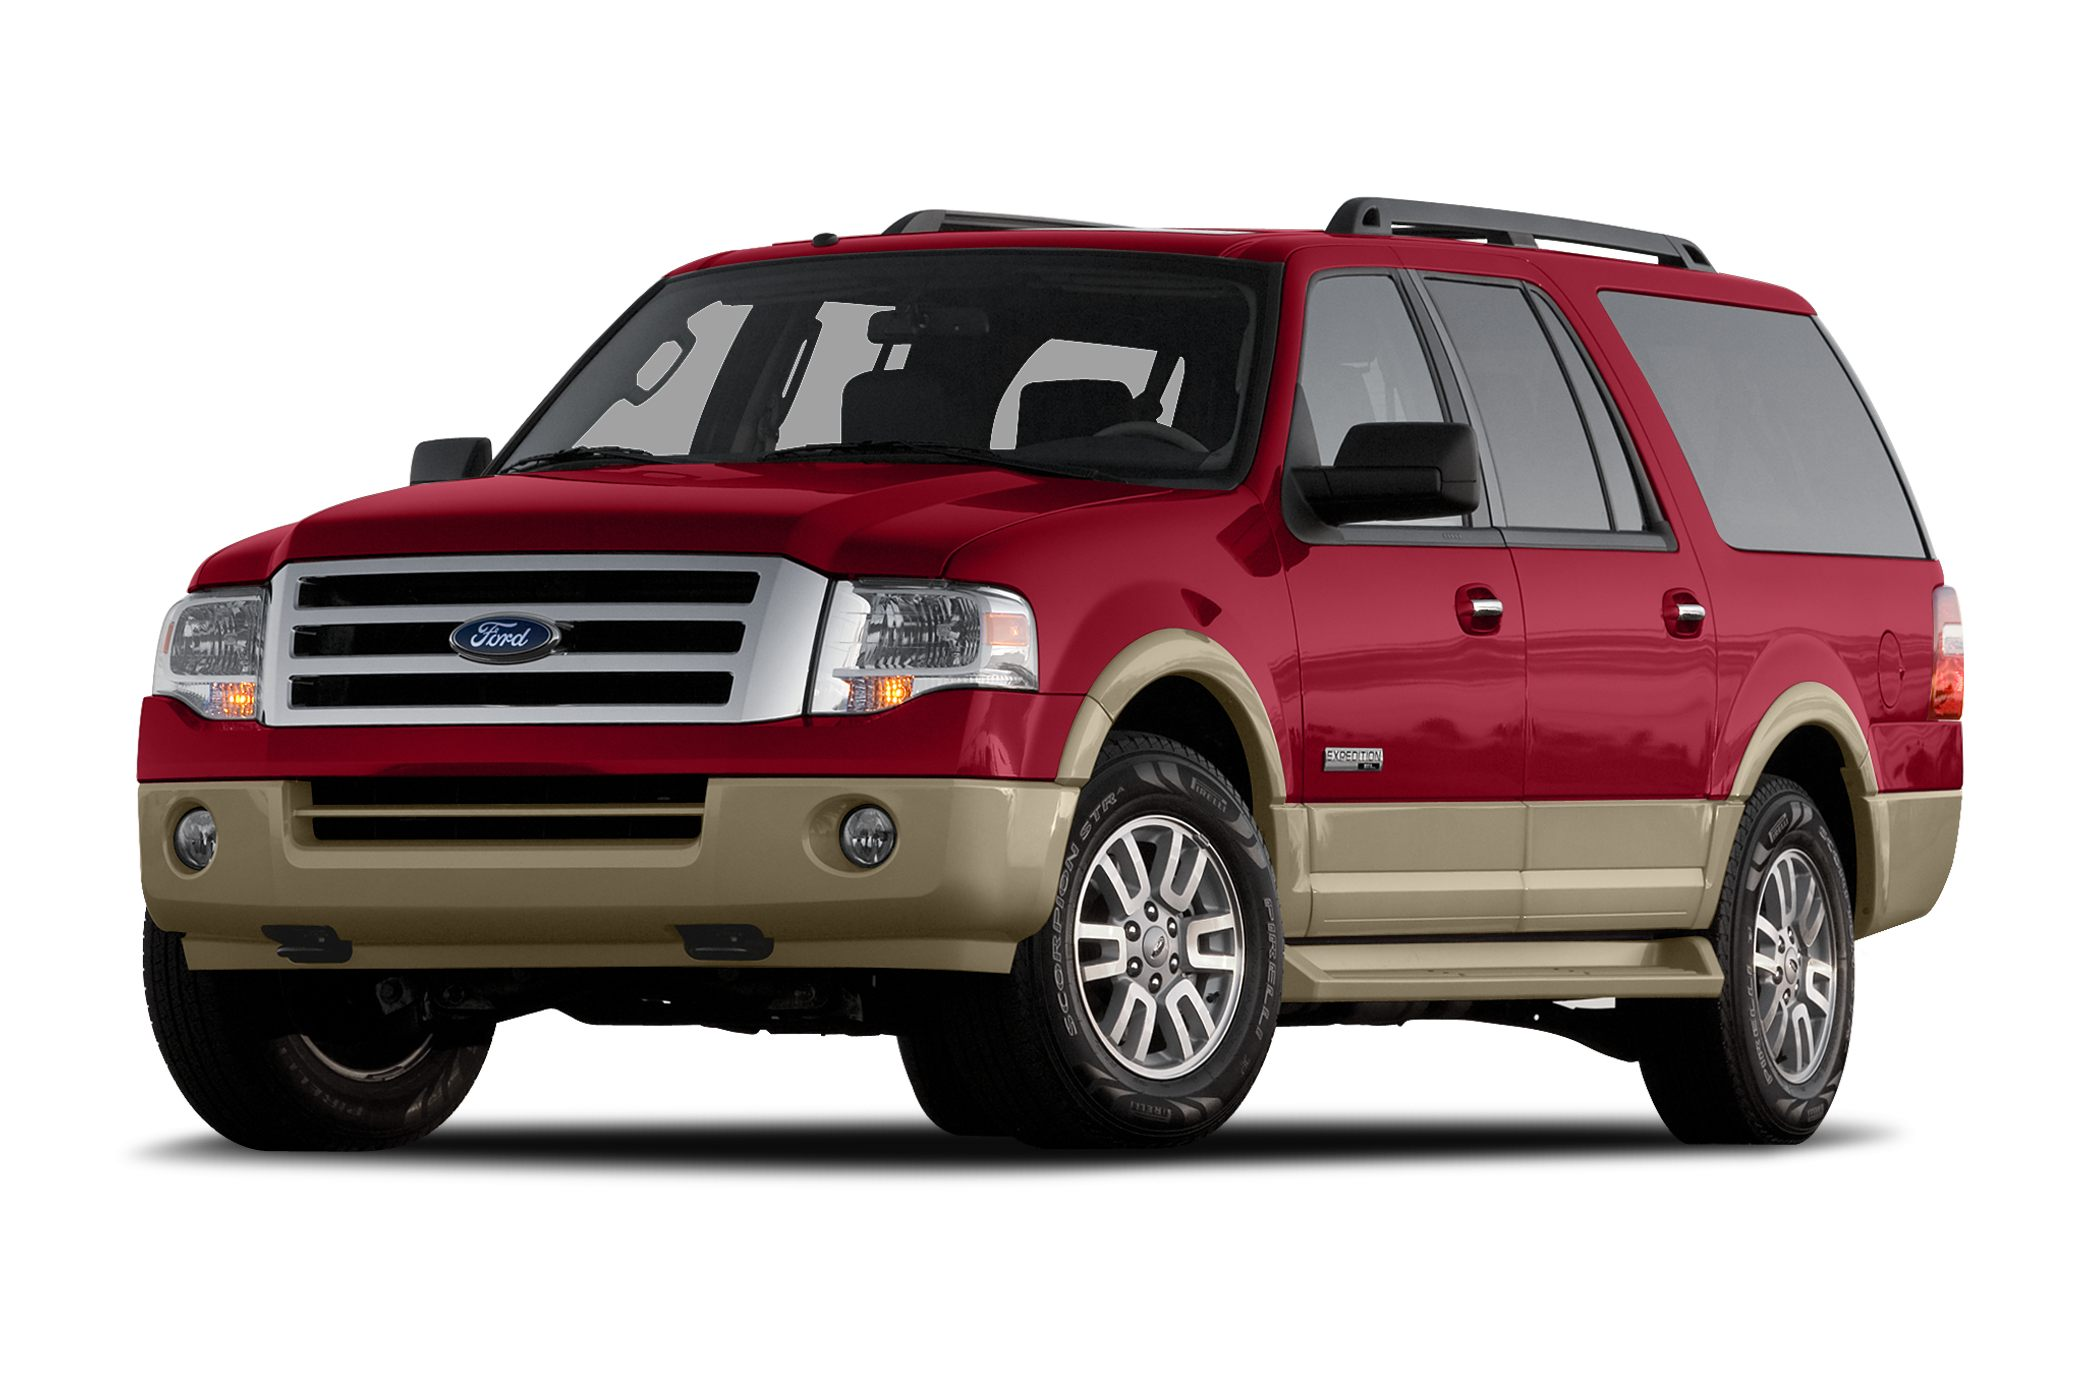 2007 Ford Expedition EL Limited SUV for sale in Park Rapids for $15,595 with 147,574 miles